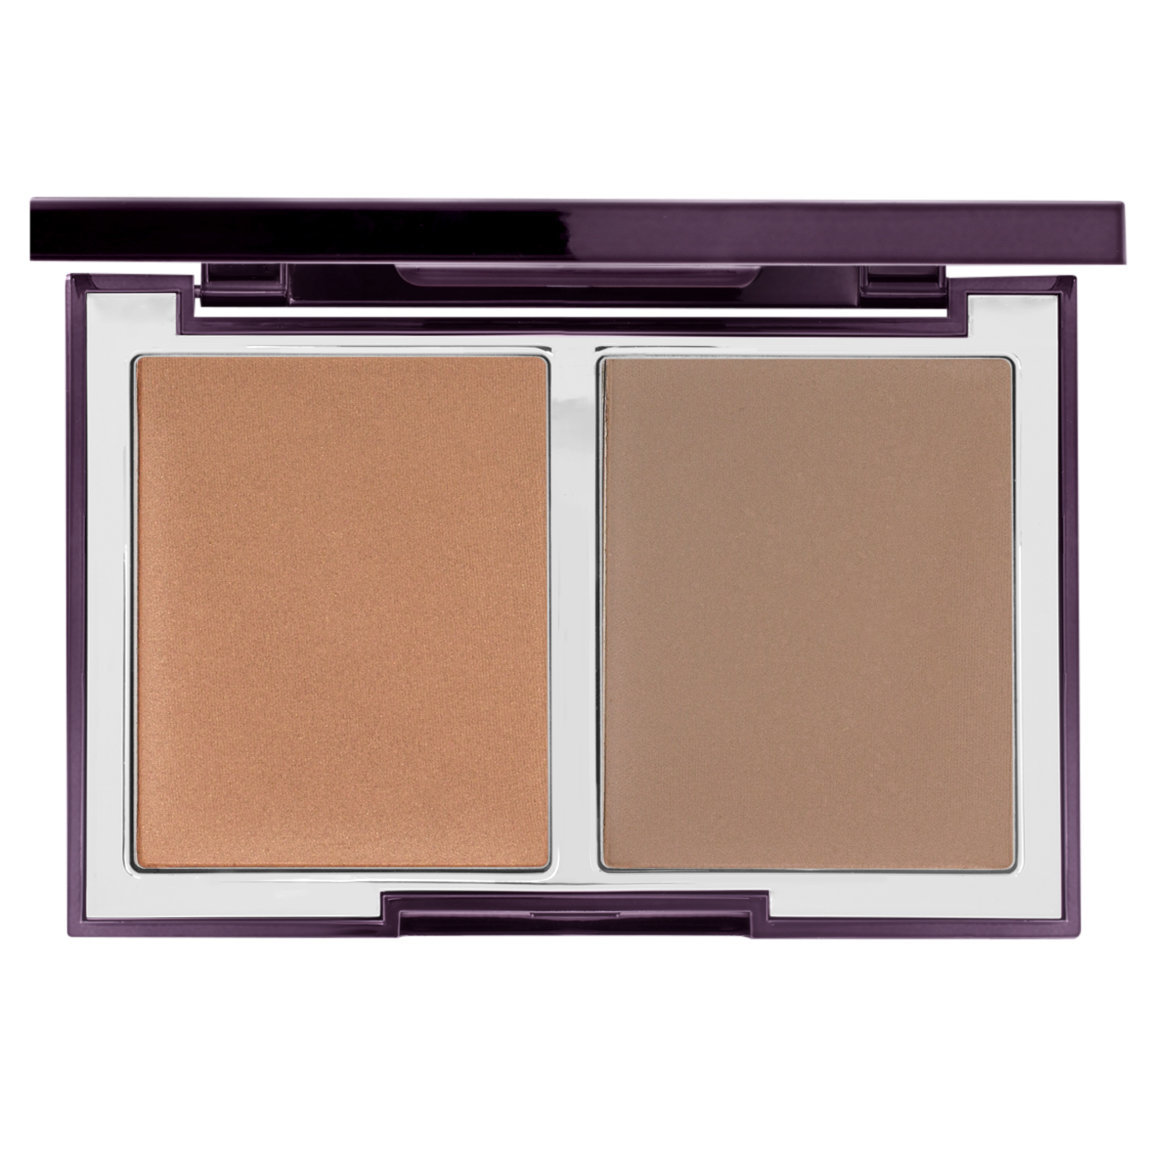 Wayne Goss The Radiance Boosting Face Palette Light Gold alternative view 1 - product swatch.